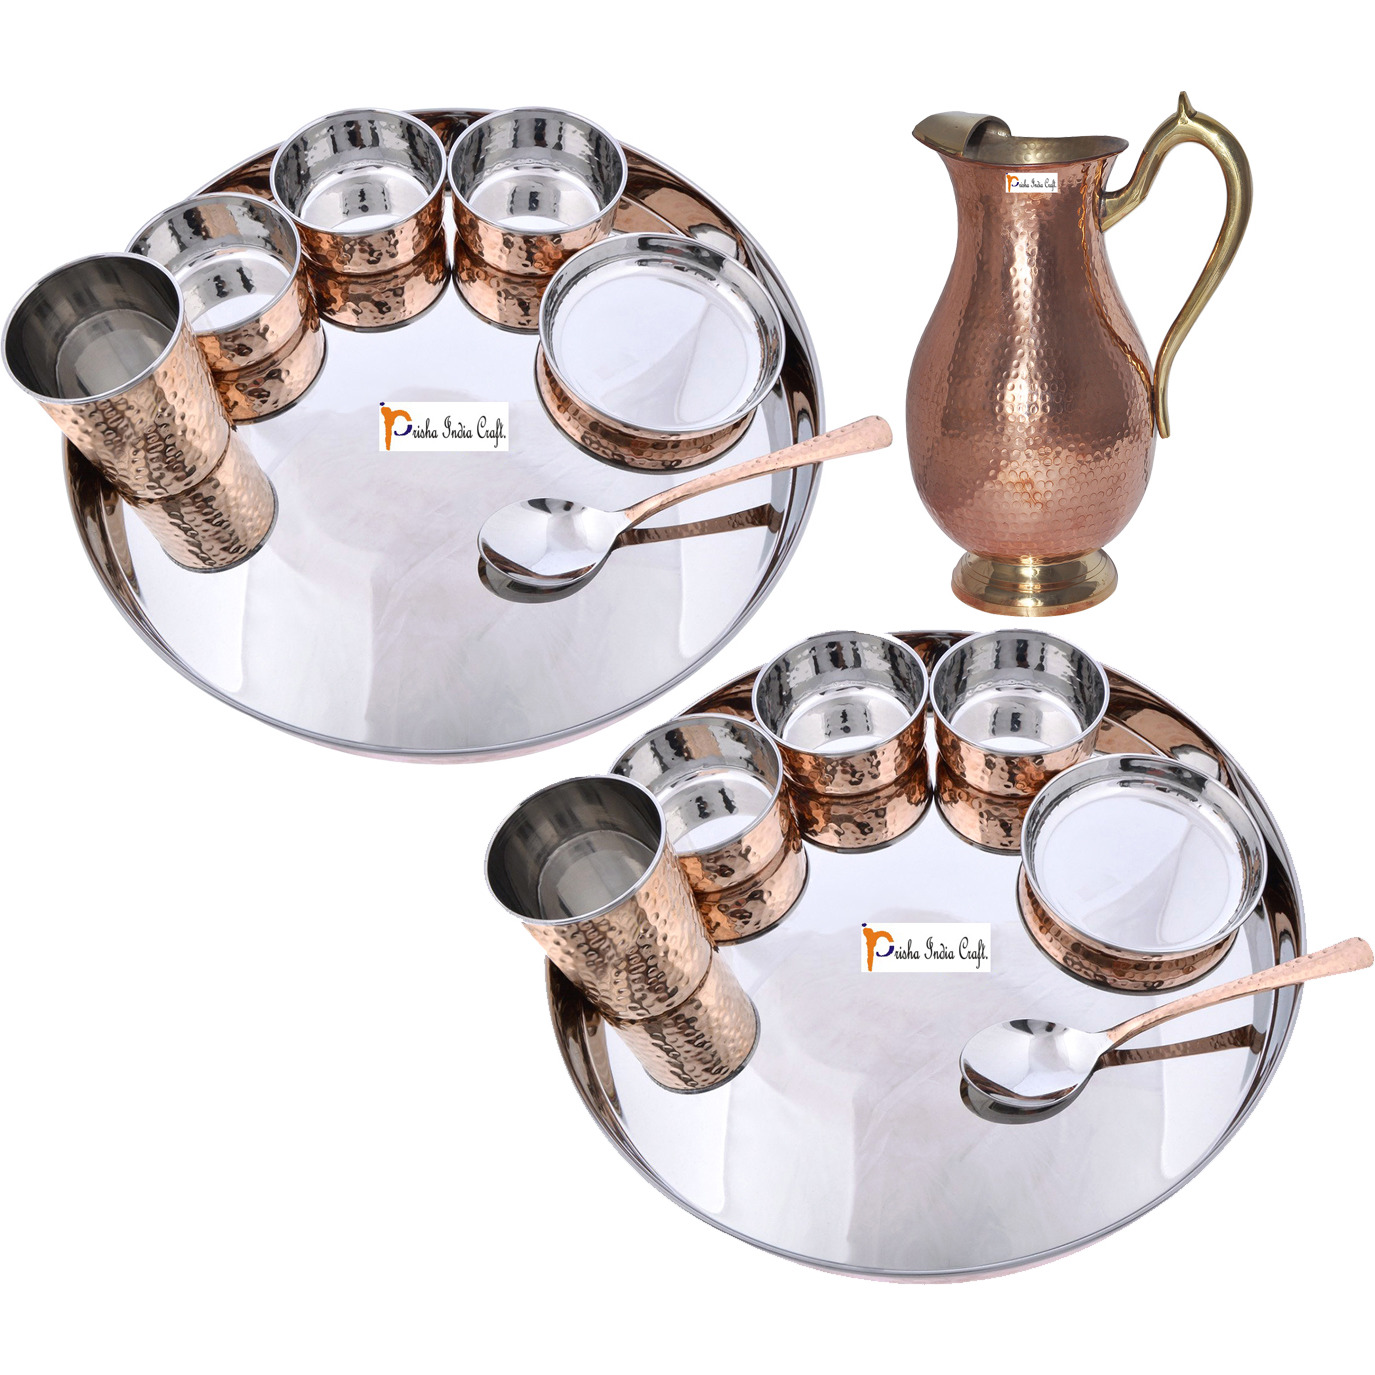 Prisha India Craft B. Set of 2 Dinnerware Traditional Stainless Steel Copper Dinner Set of Thali Plate, Bowls, Glass and Spoon, Dia 13  With 1 Pure Copper Mughal Pitcher Jug - Christmas Gift